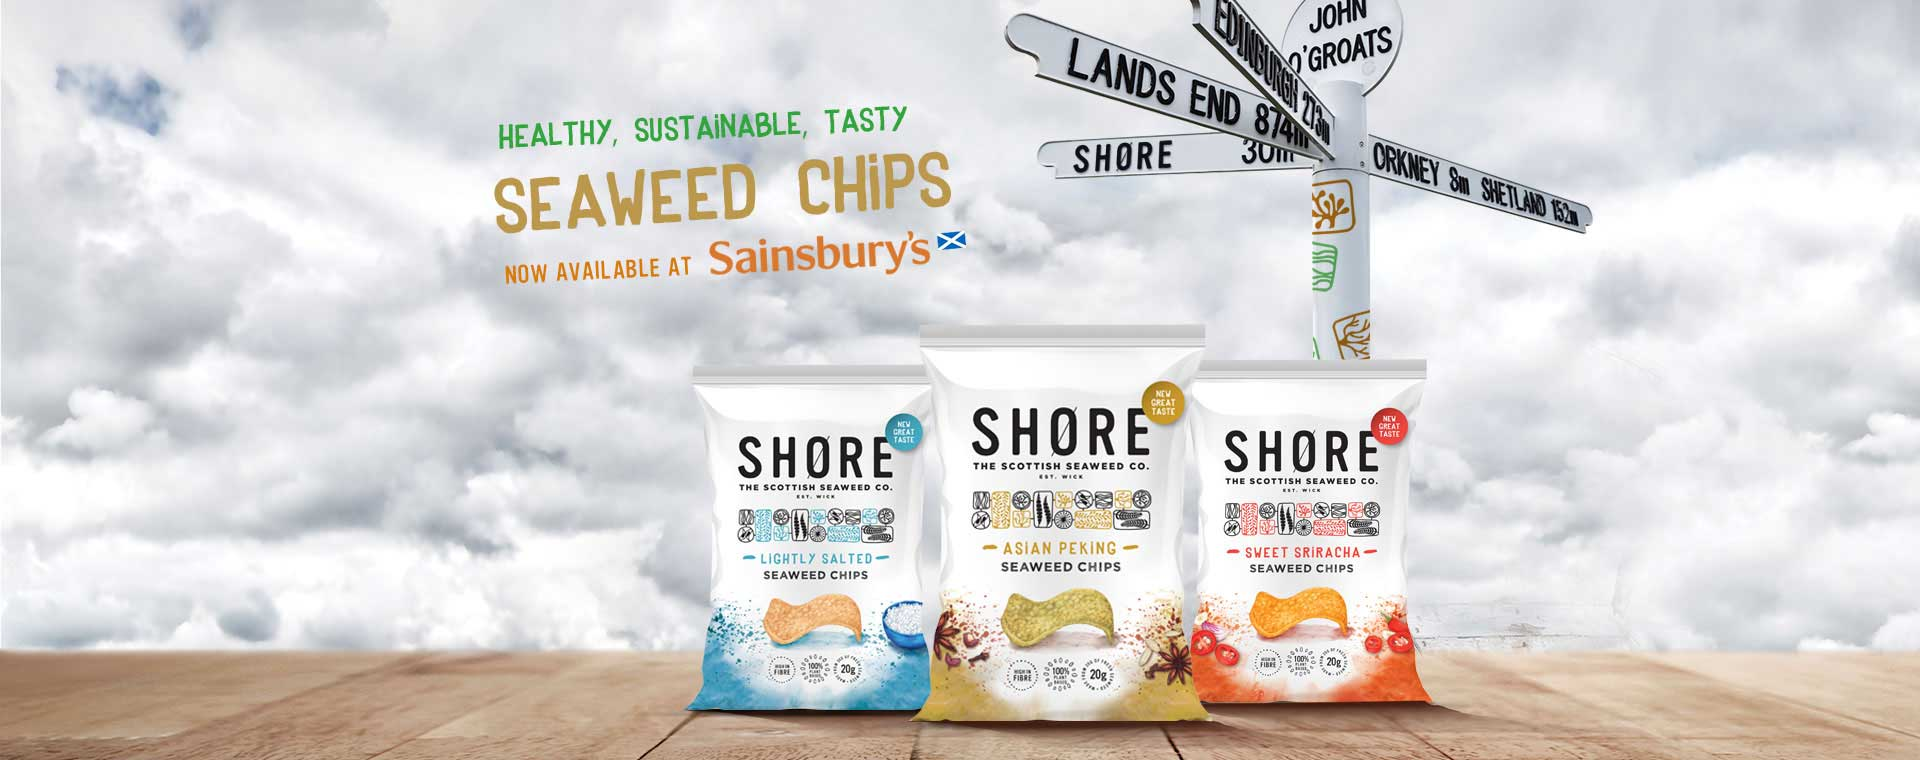 Shore-Seaweed-Wide-Header-Chips-Sainsburys